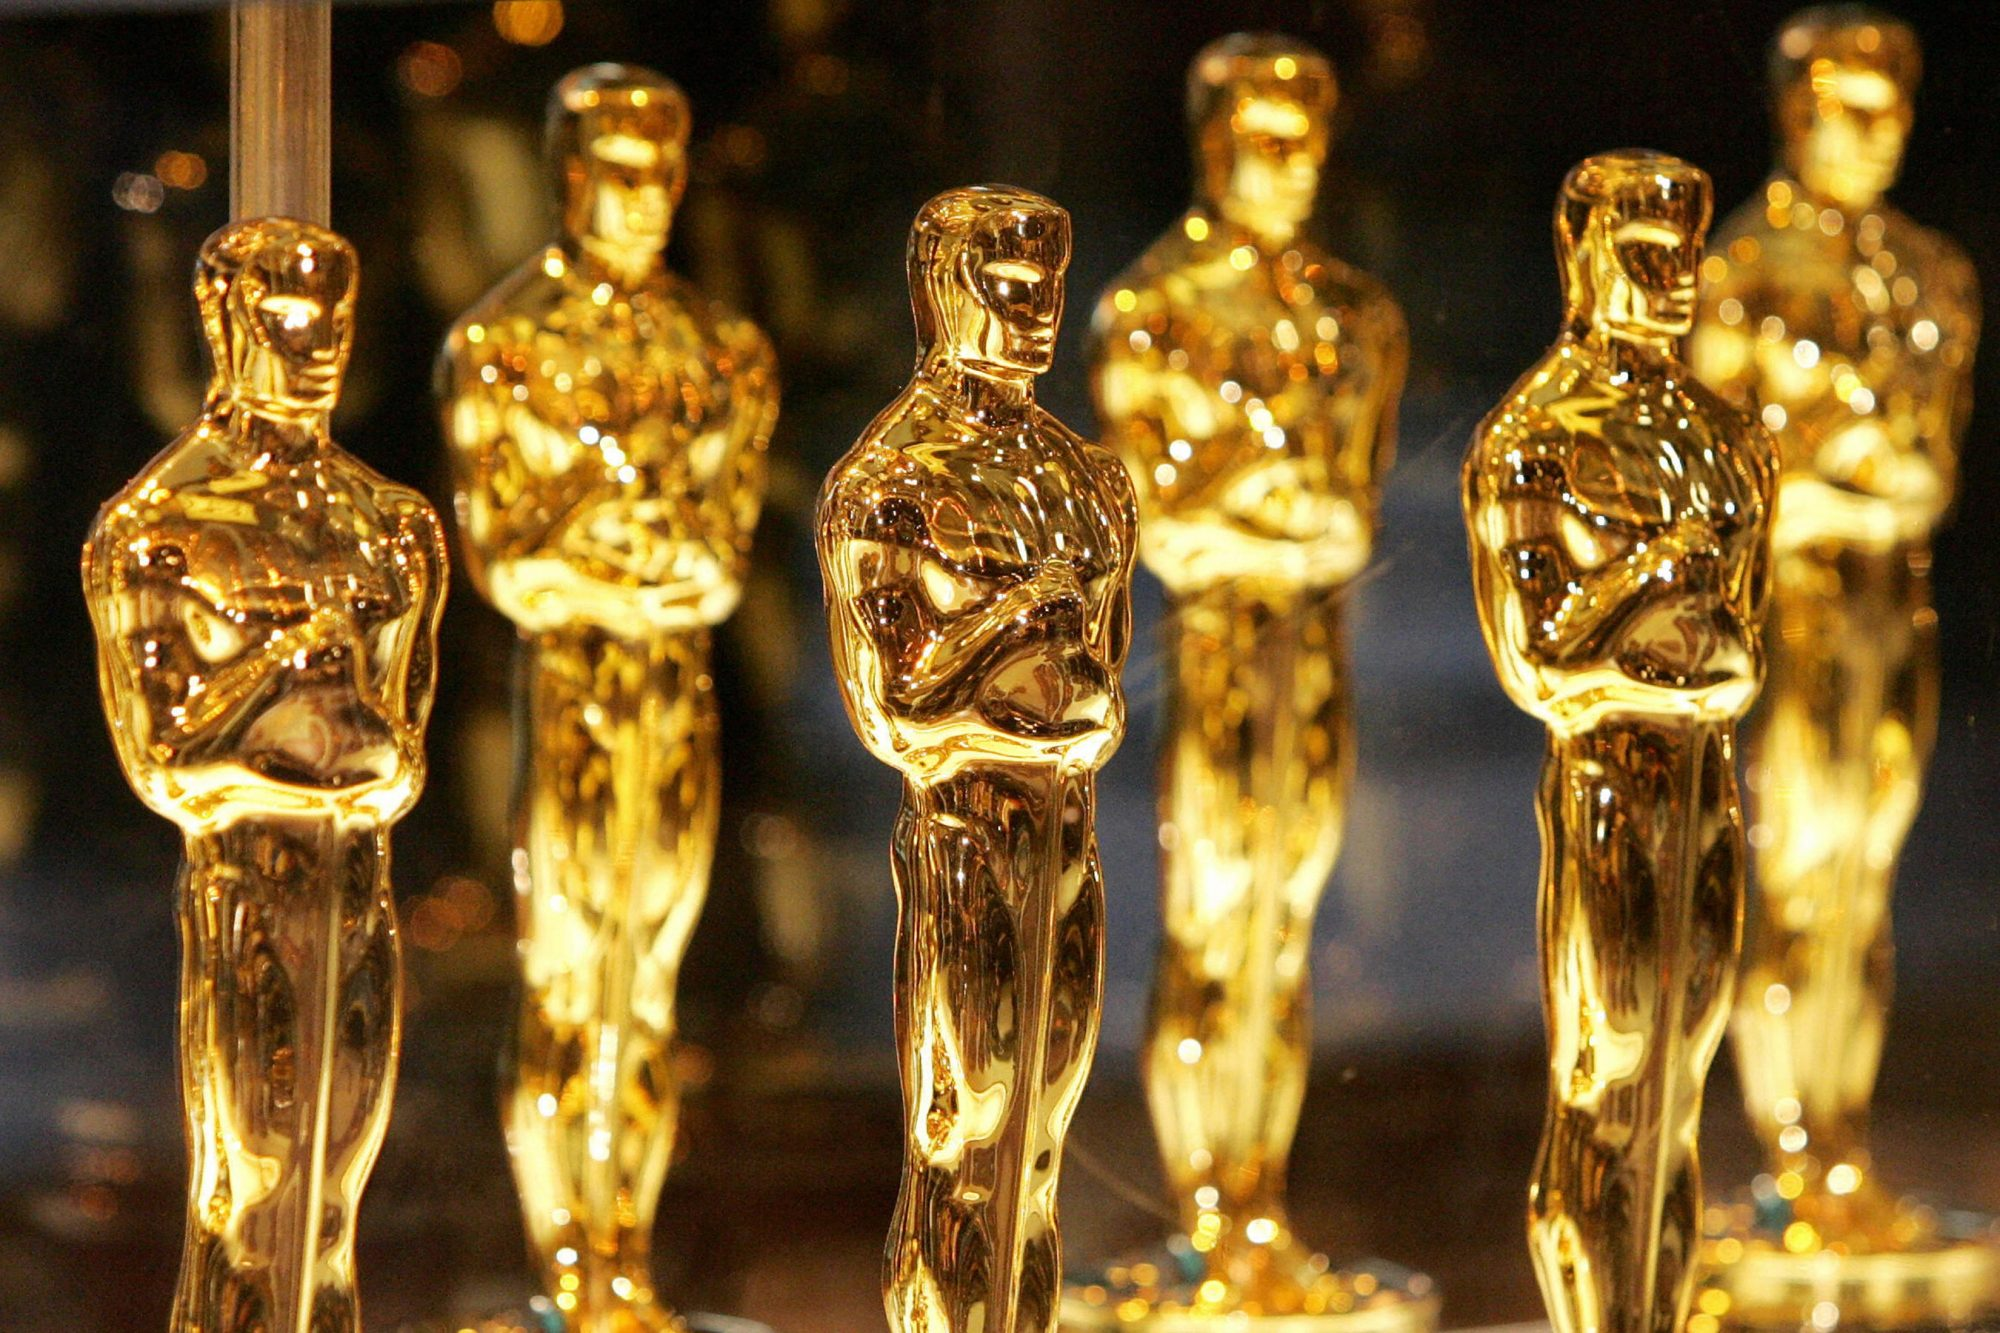 Oscar statuettes are displayed at Times